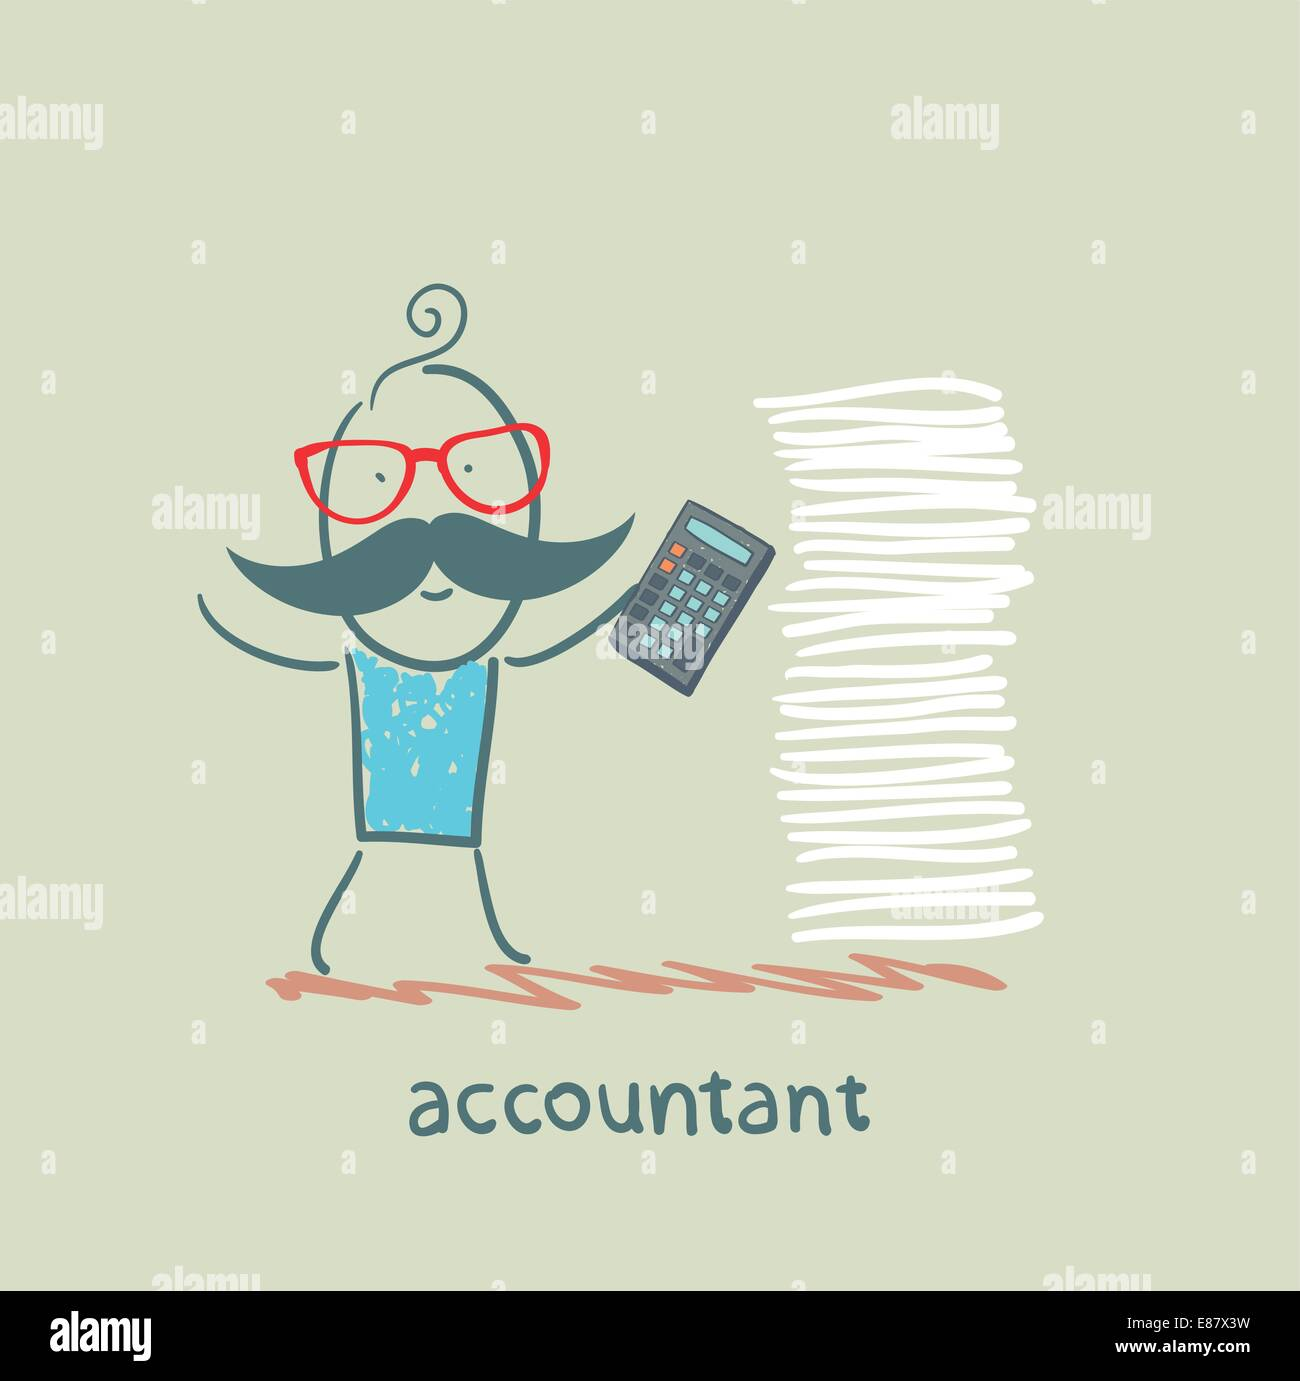 accountant with a calculator and a stack of documents - Stock Vector